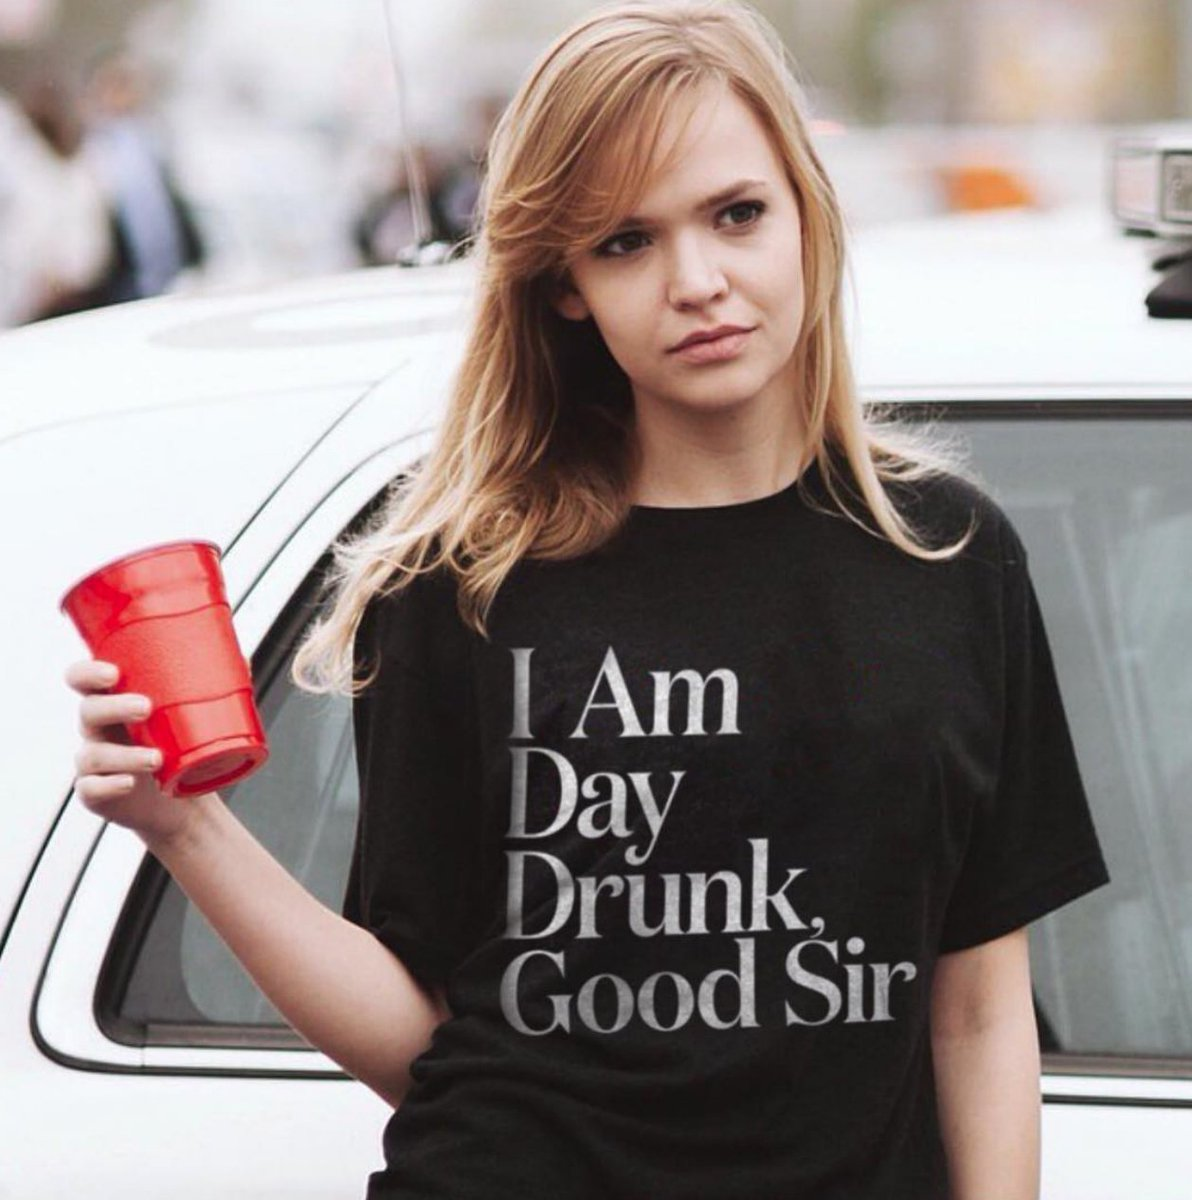 GOOD SIR! Day Drunk shirts are back in the shop – Cop one here: https://t.co/MvqSWFLJC5